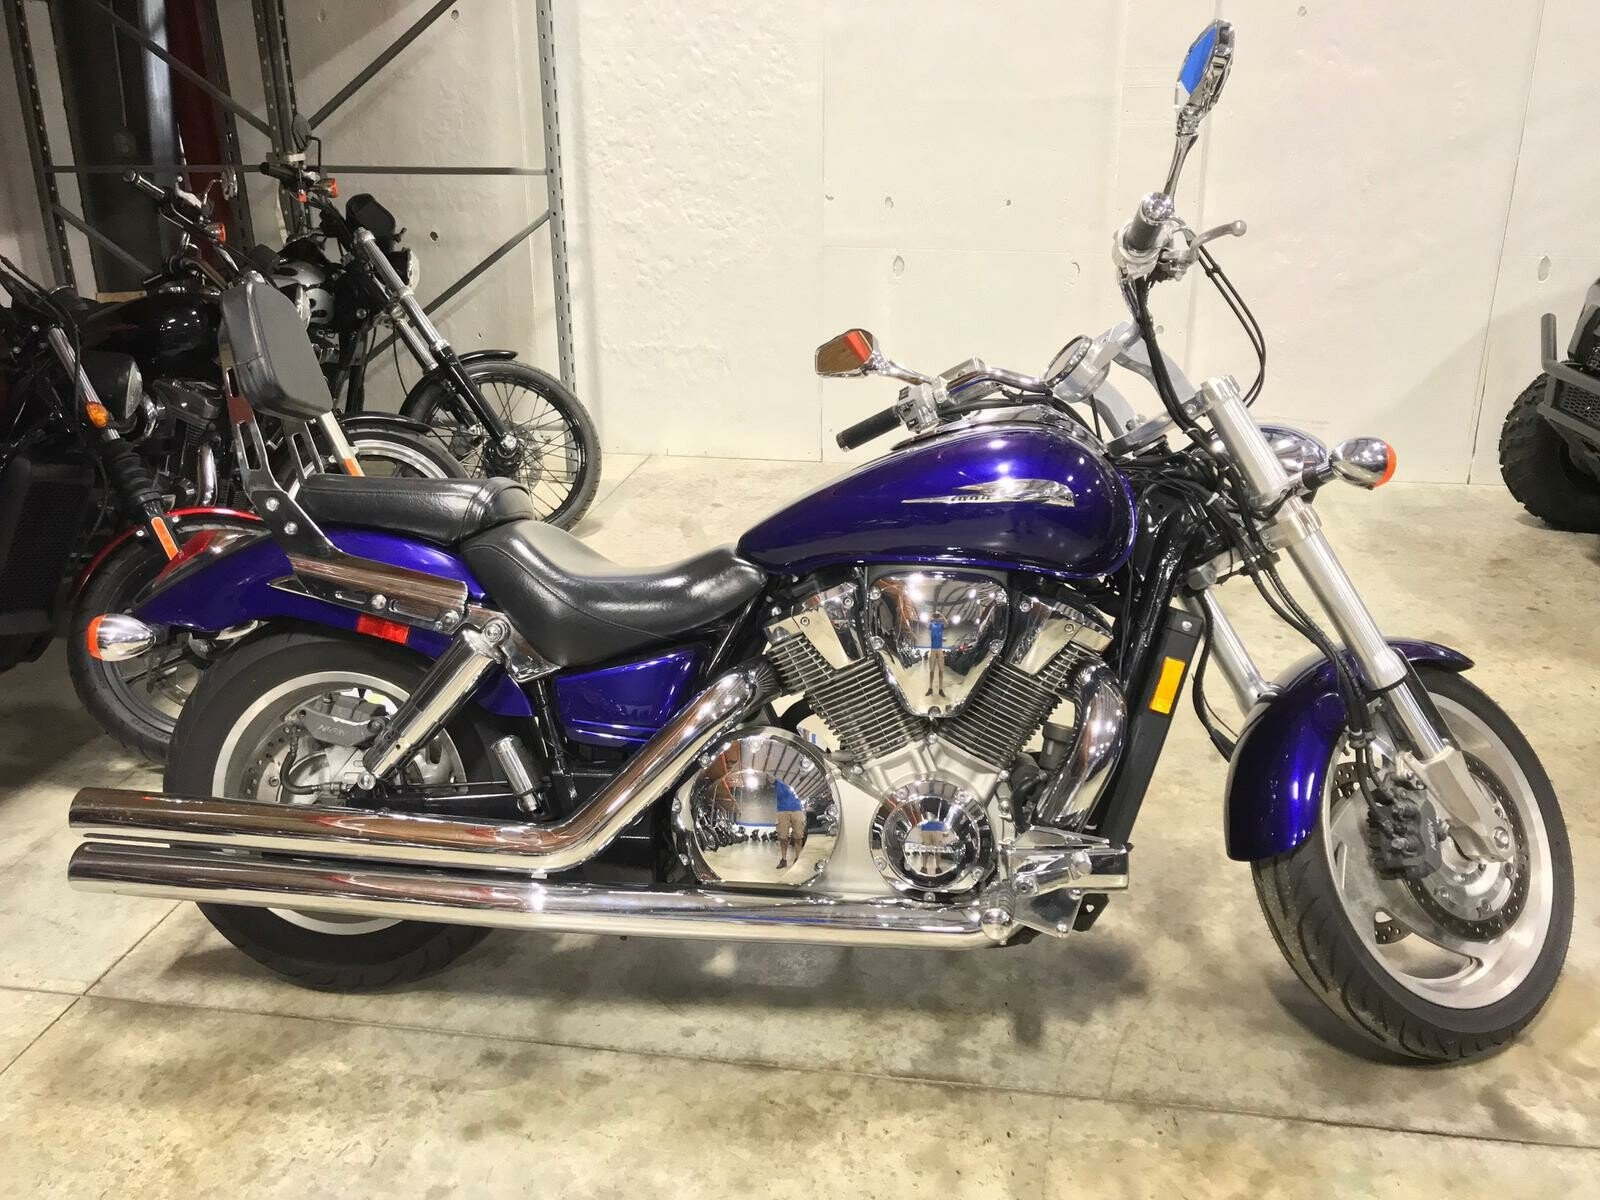 Honda Vtx1800 Motorcycles For Sale Motorcycles On Autotrader